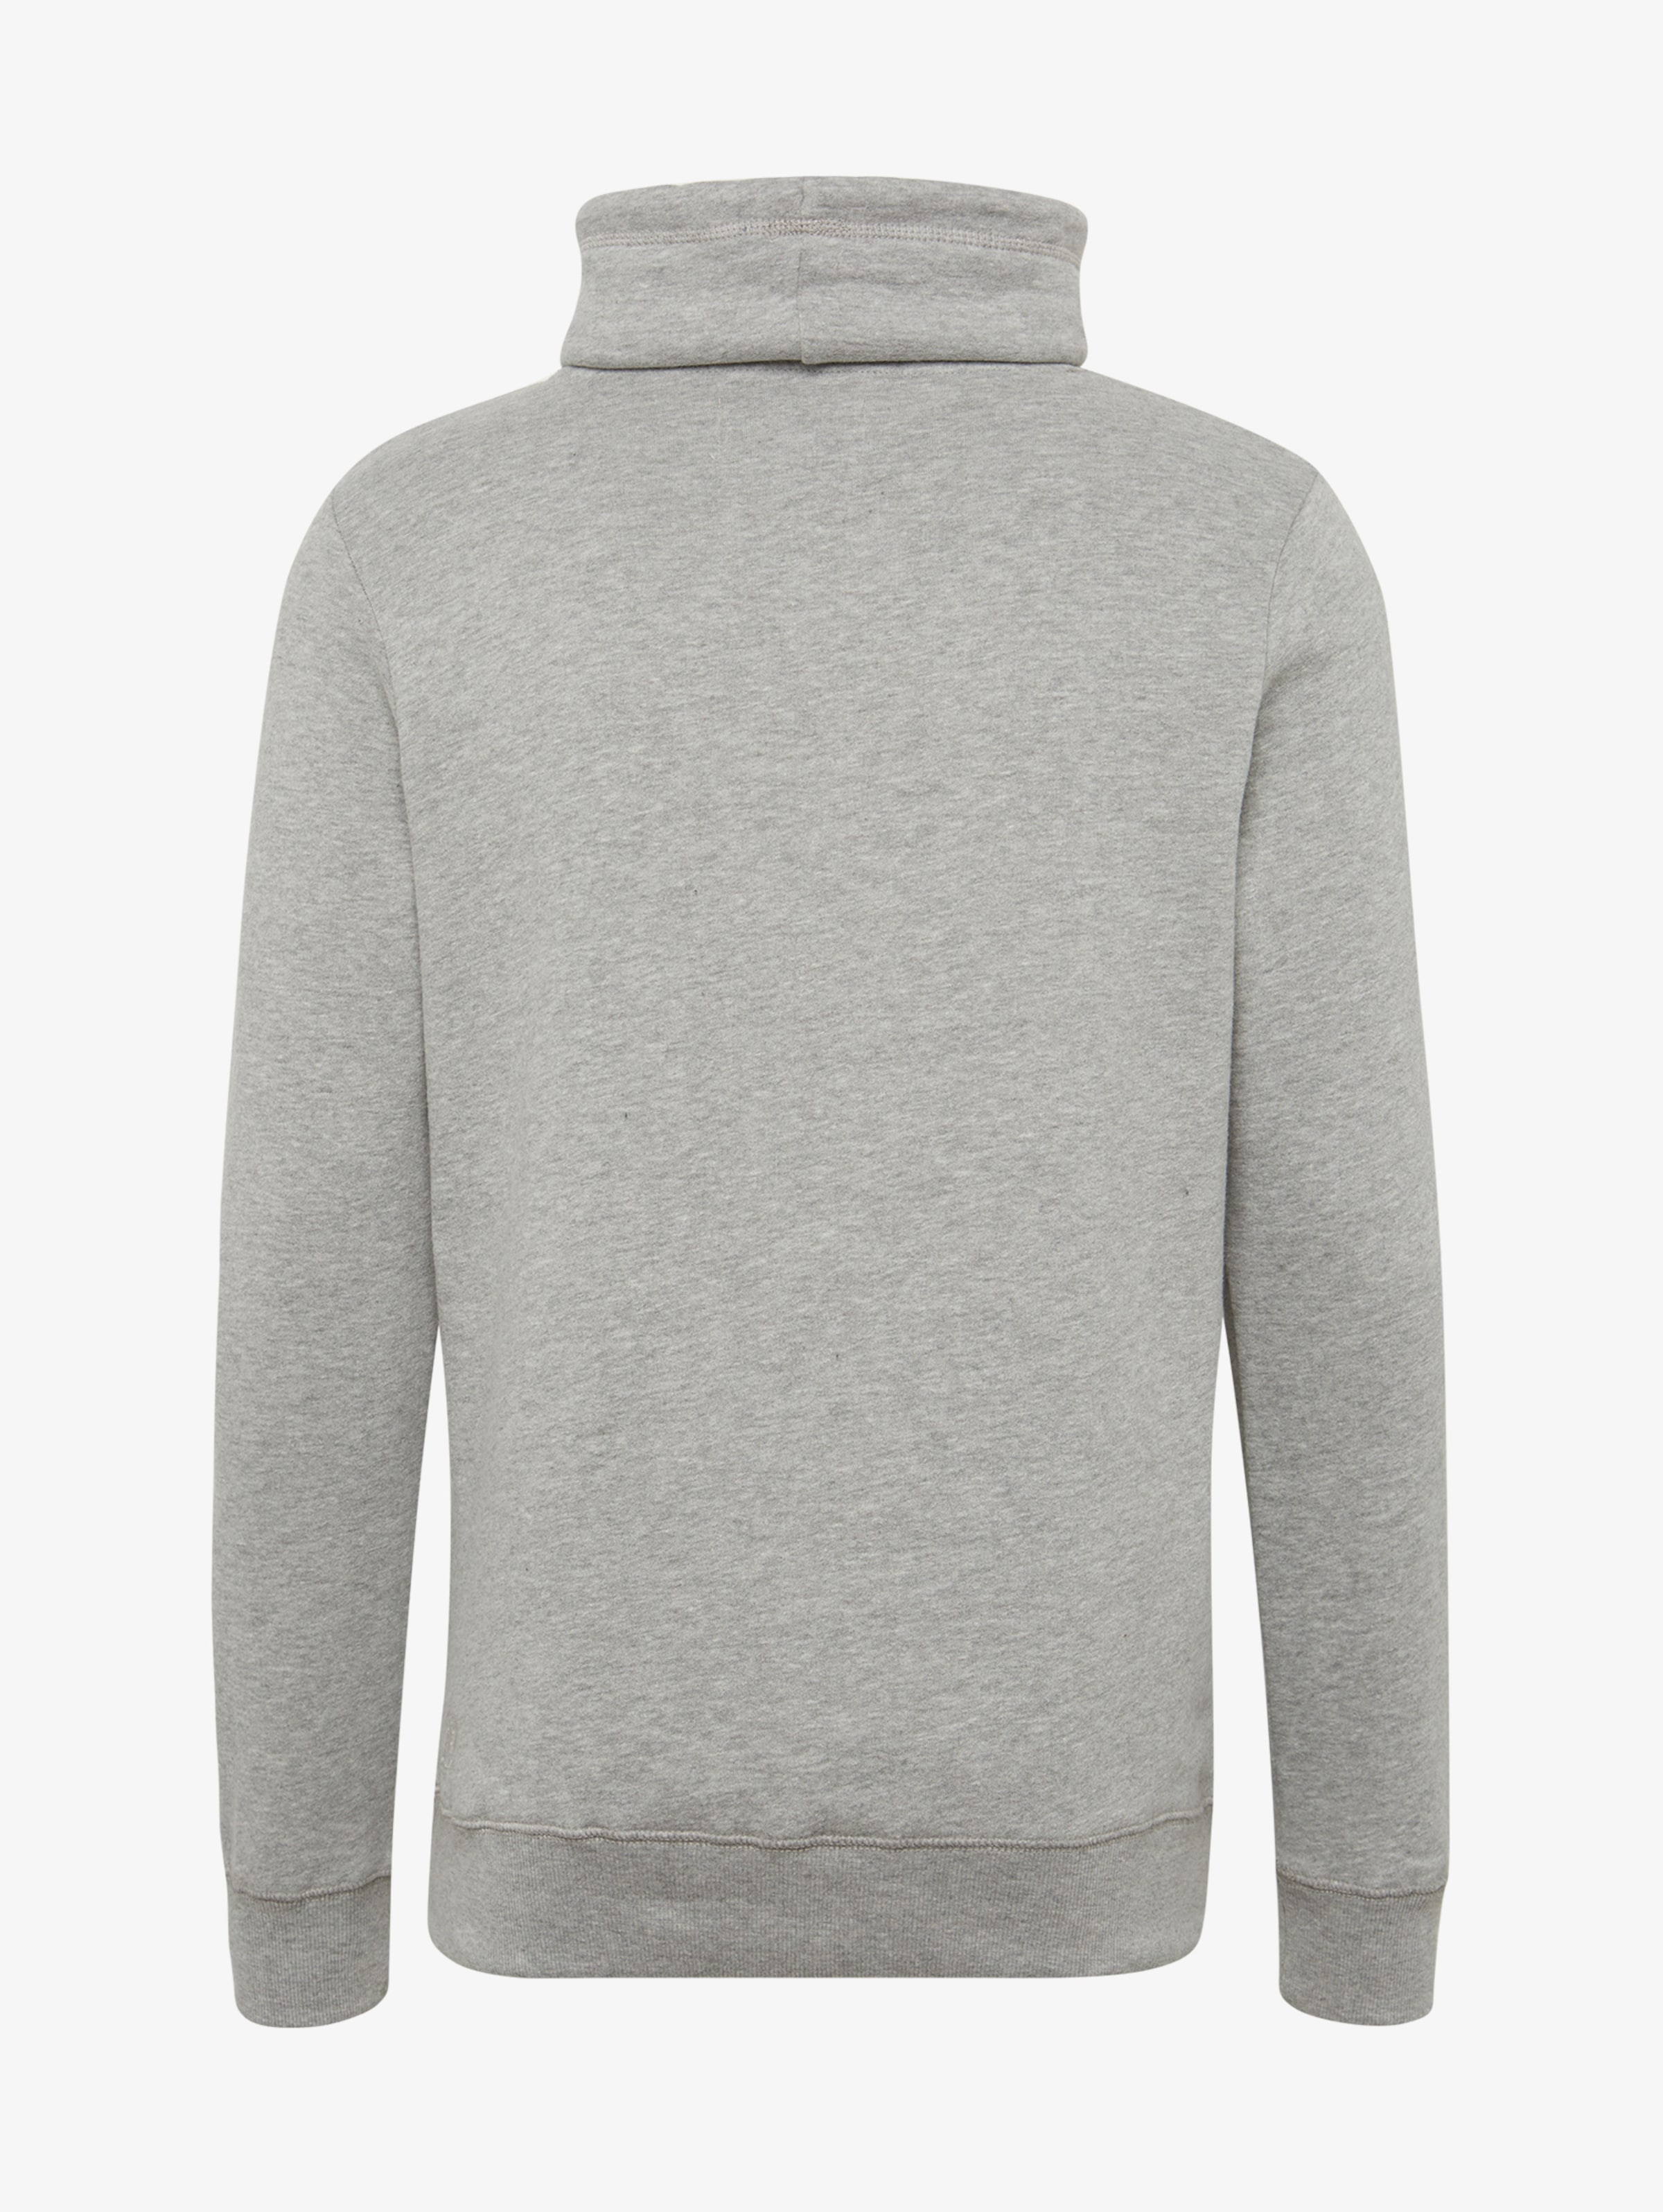 Tailor Tom GraumeliertSchwarz Denim Sweatshirt In qSMVpzU